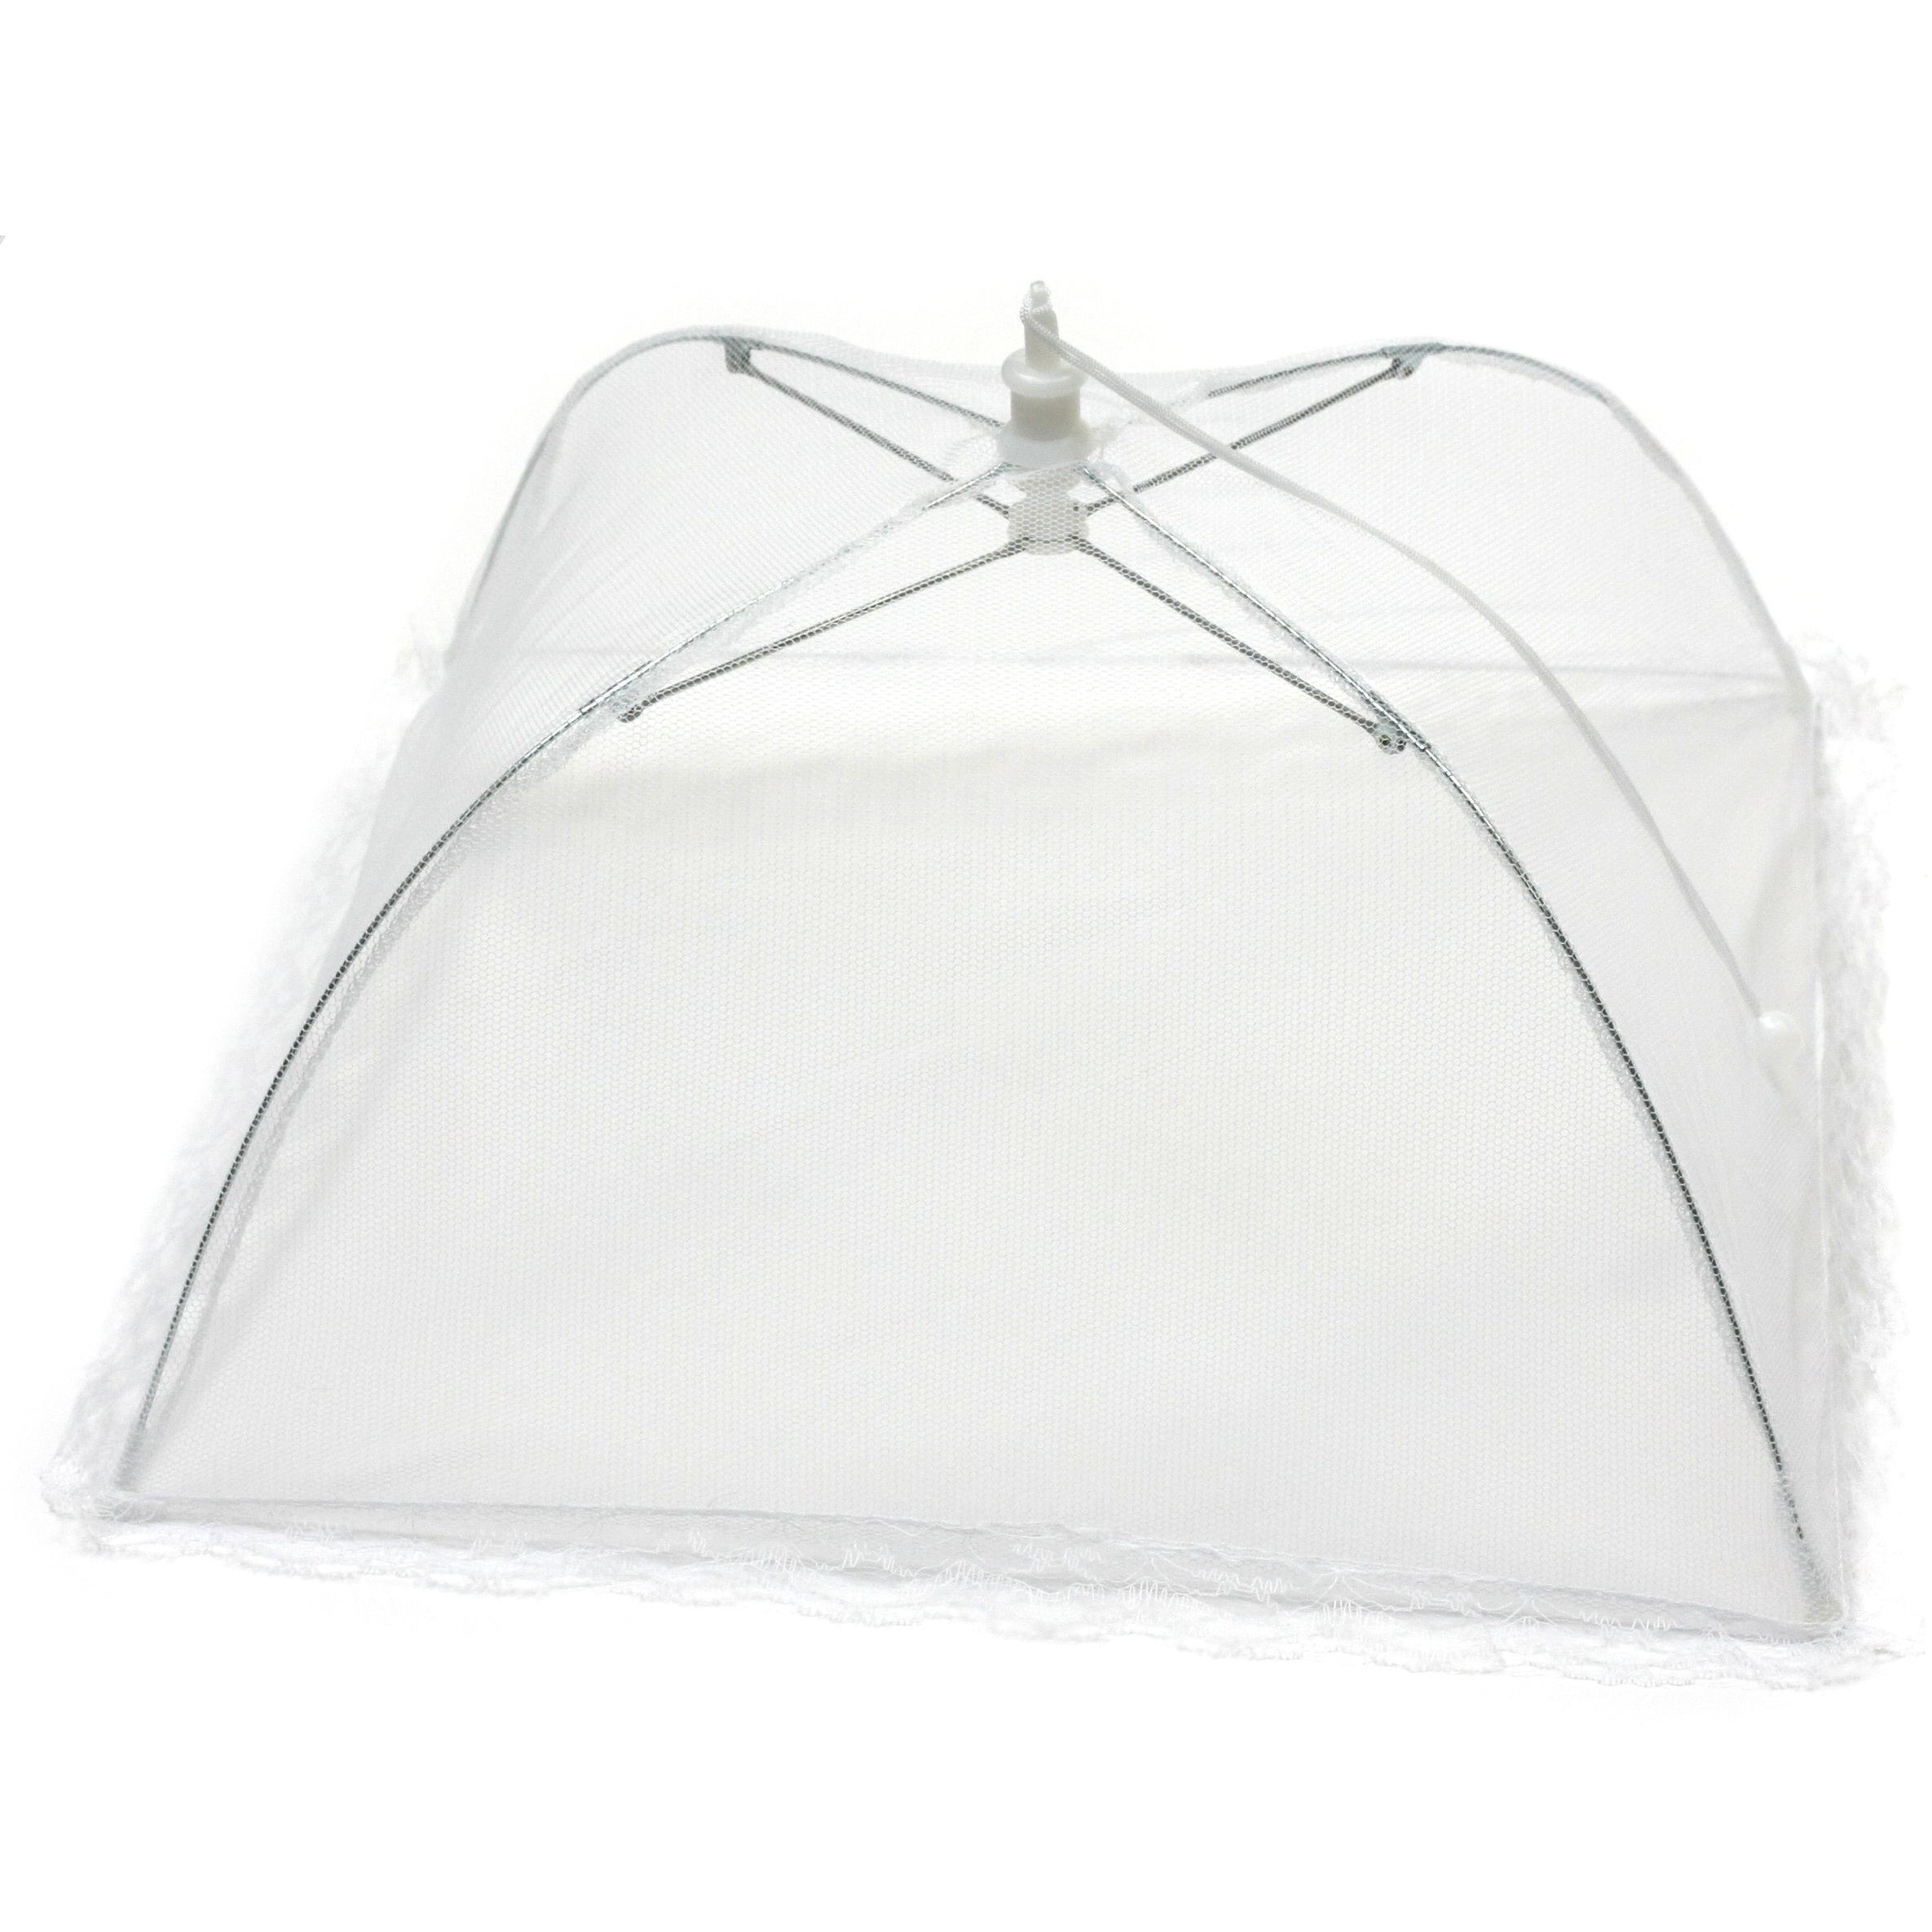 best service 33a4f 9b739 Wholesale Tents now available at Wholesale Central - Items 1 ...